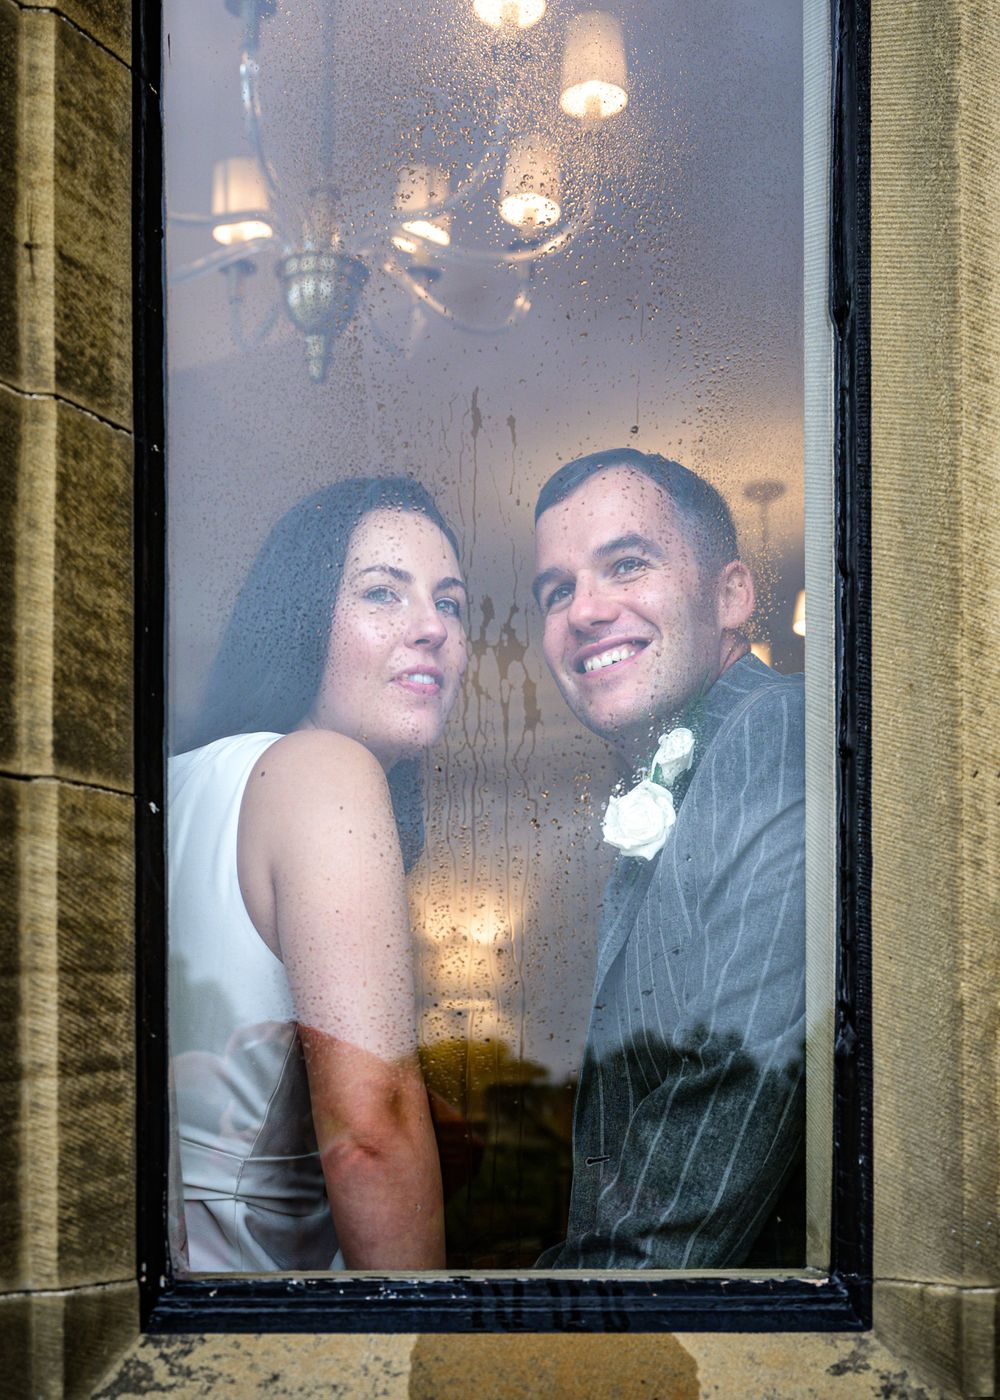 Bride and groom looking out window on rainy day at Cragwood